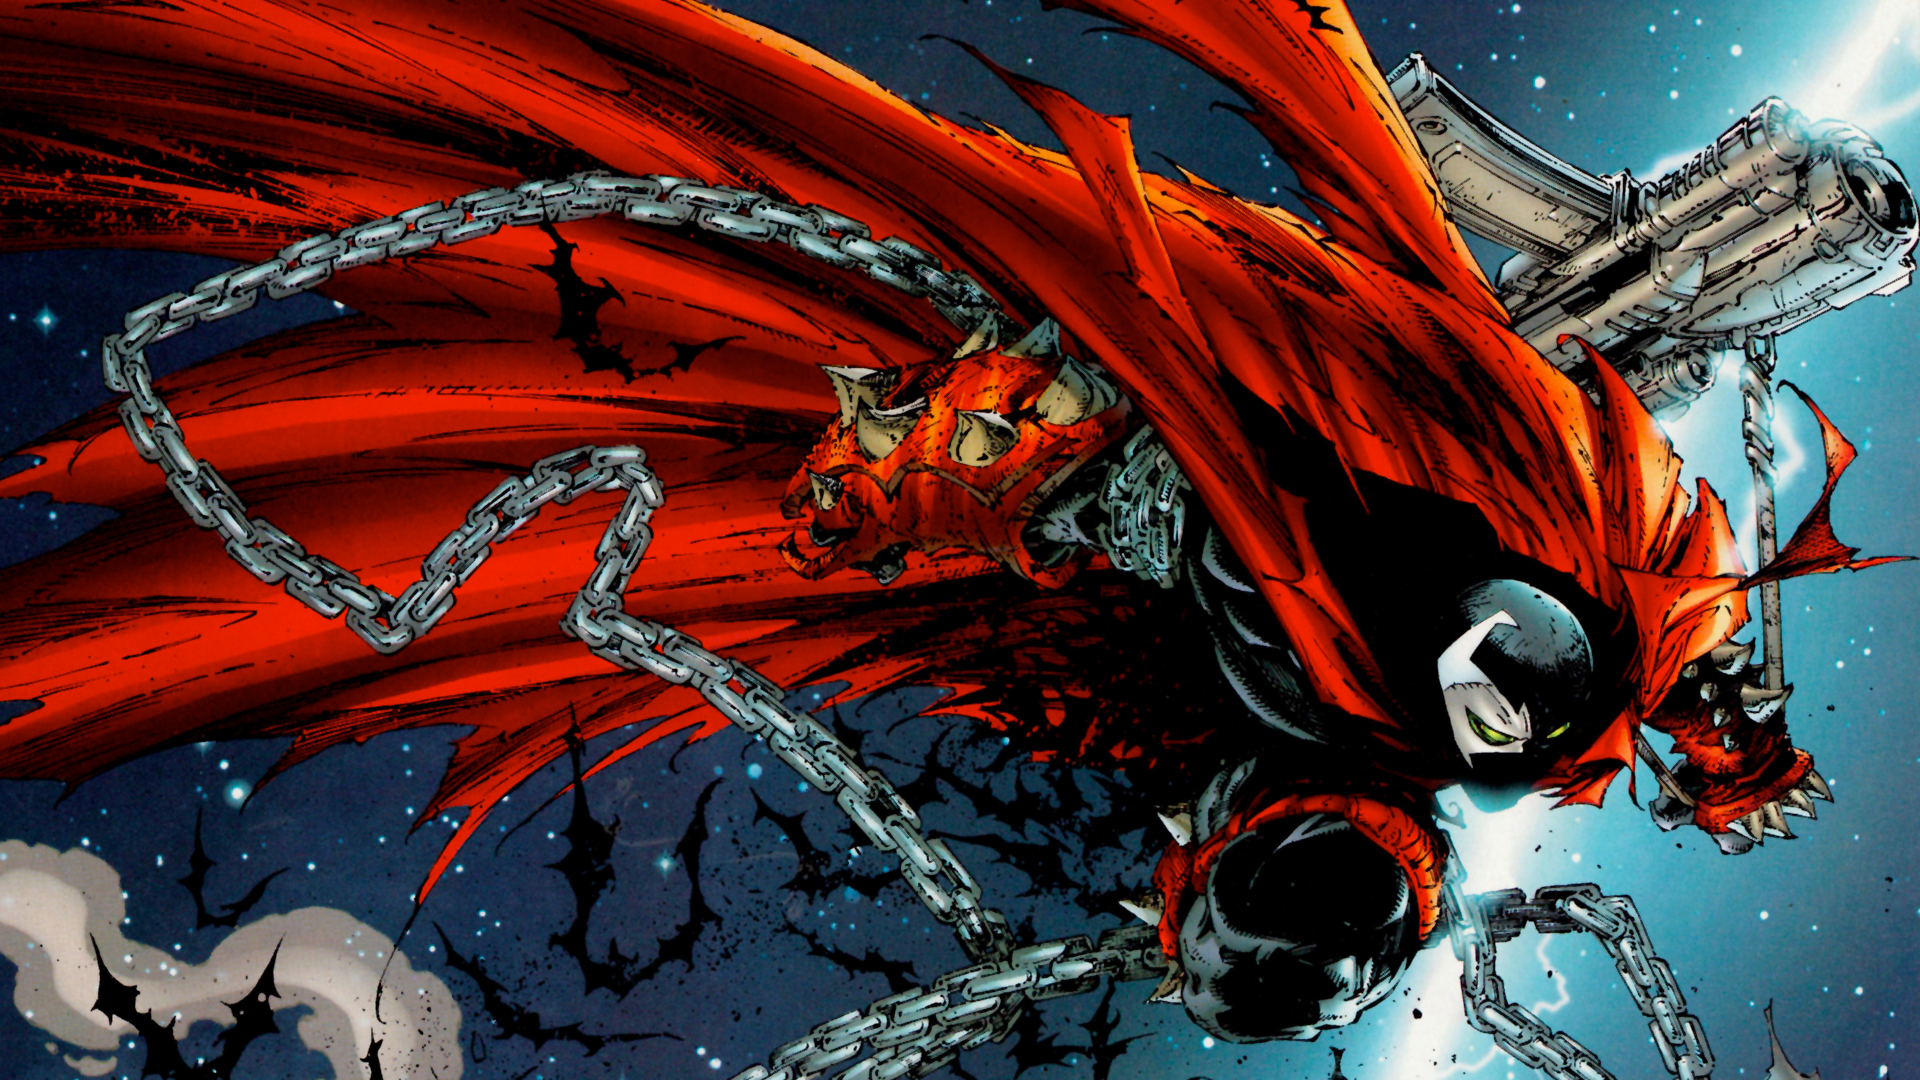 Todd McFarlane Still Working On His Dark R Rated Spawn Reboot